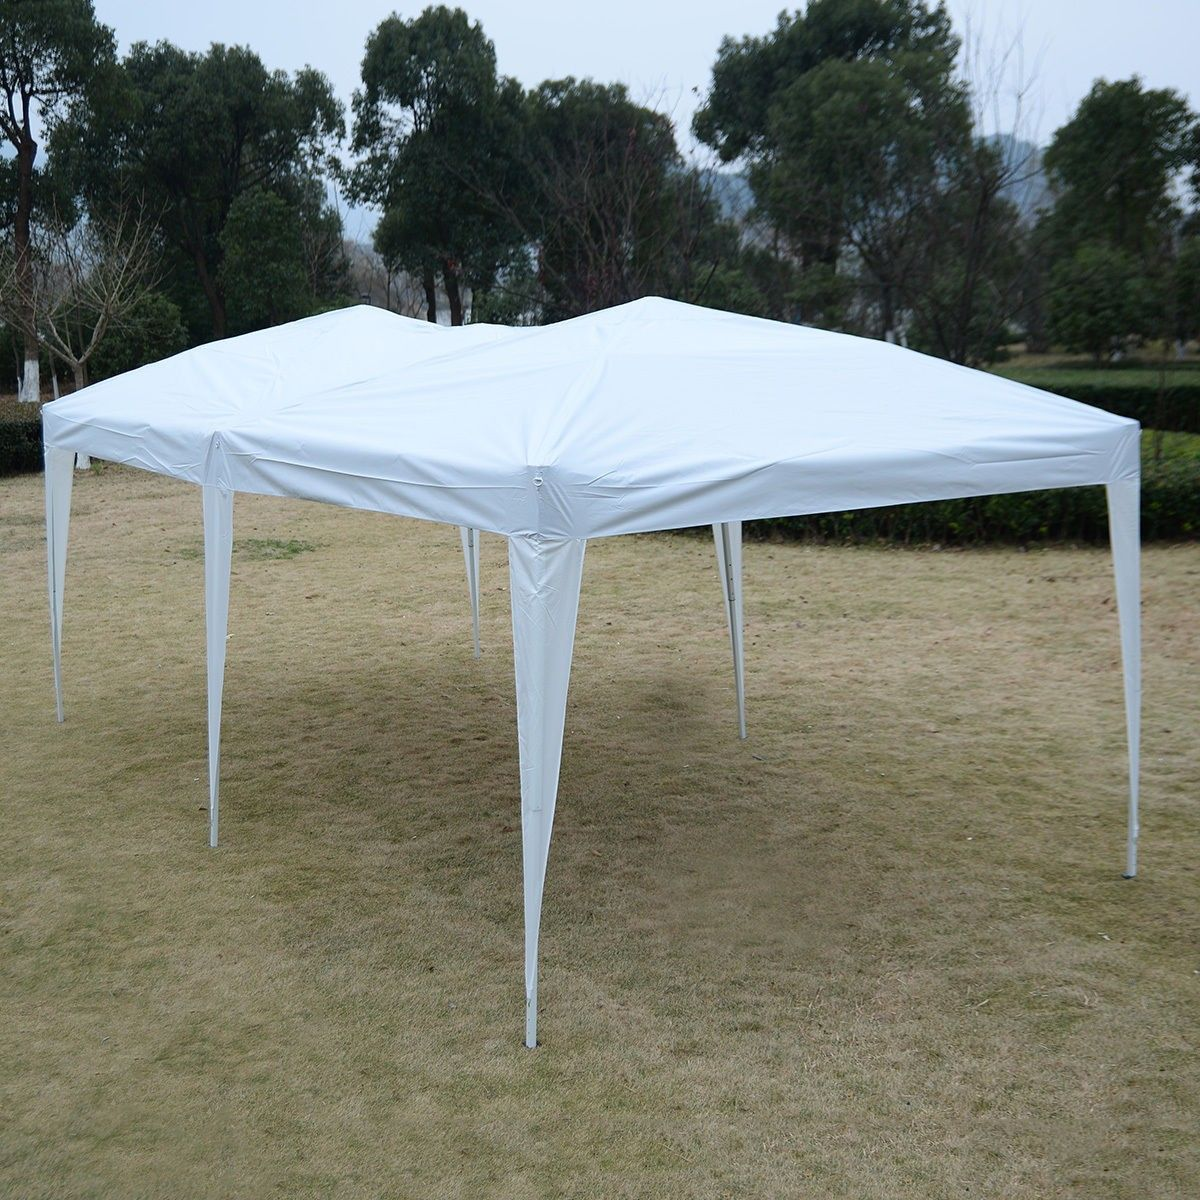 10 X 20 Ez Pop Up Folding Wedding Party Tent Cross Bar Party Tent Gazebo Tent